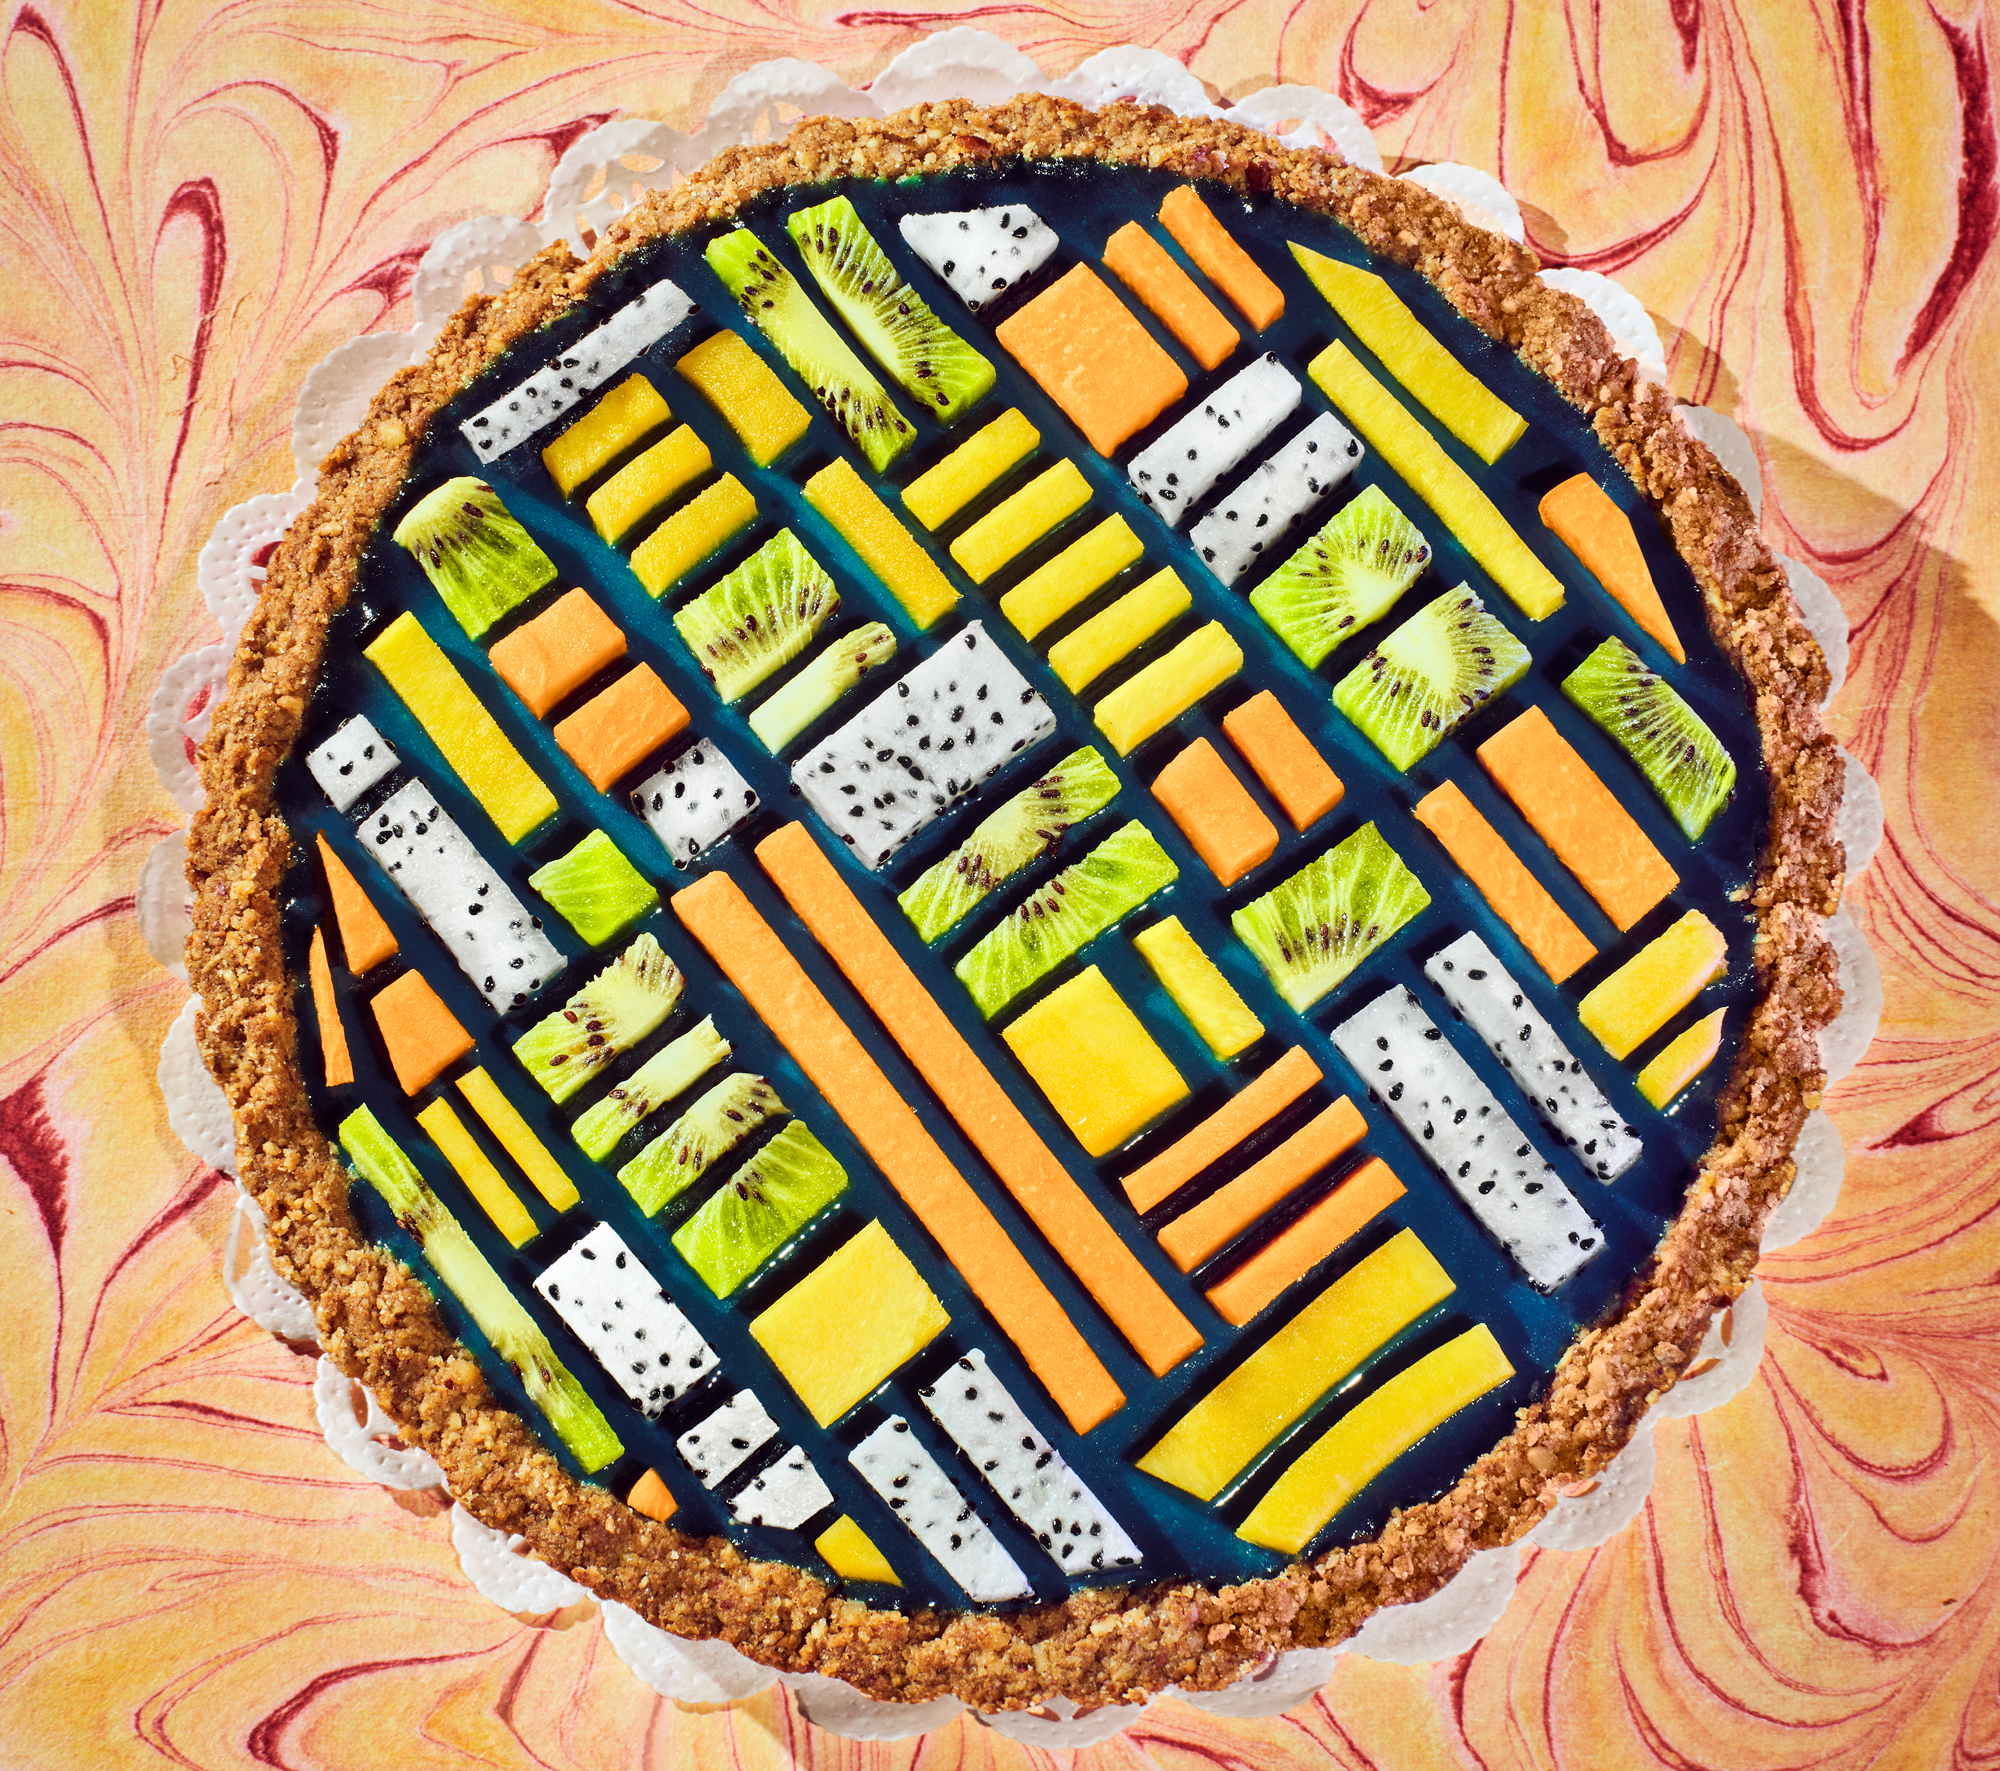 Pie with pattern of papaya, mango, and kiwi slices